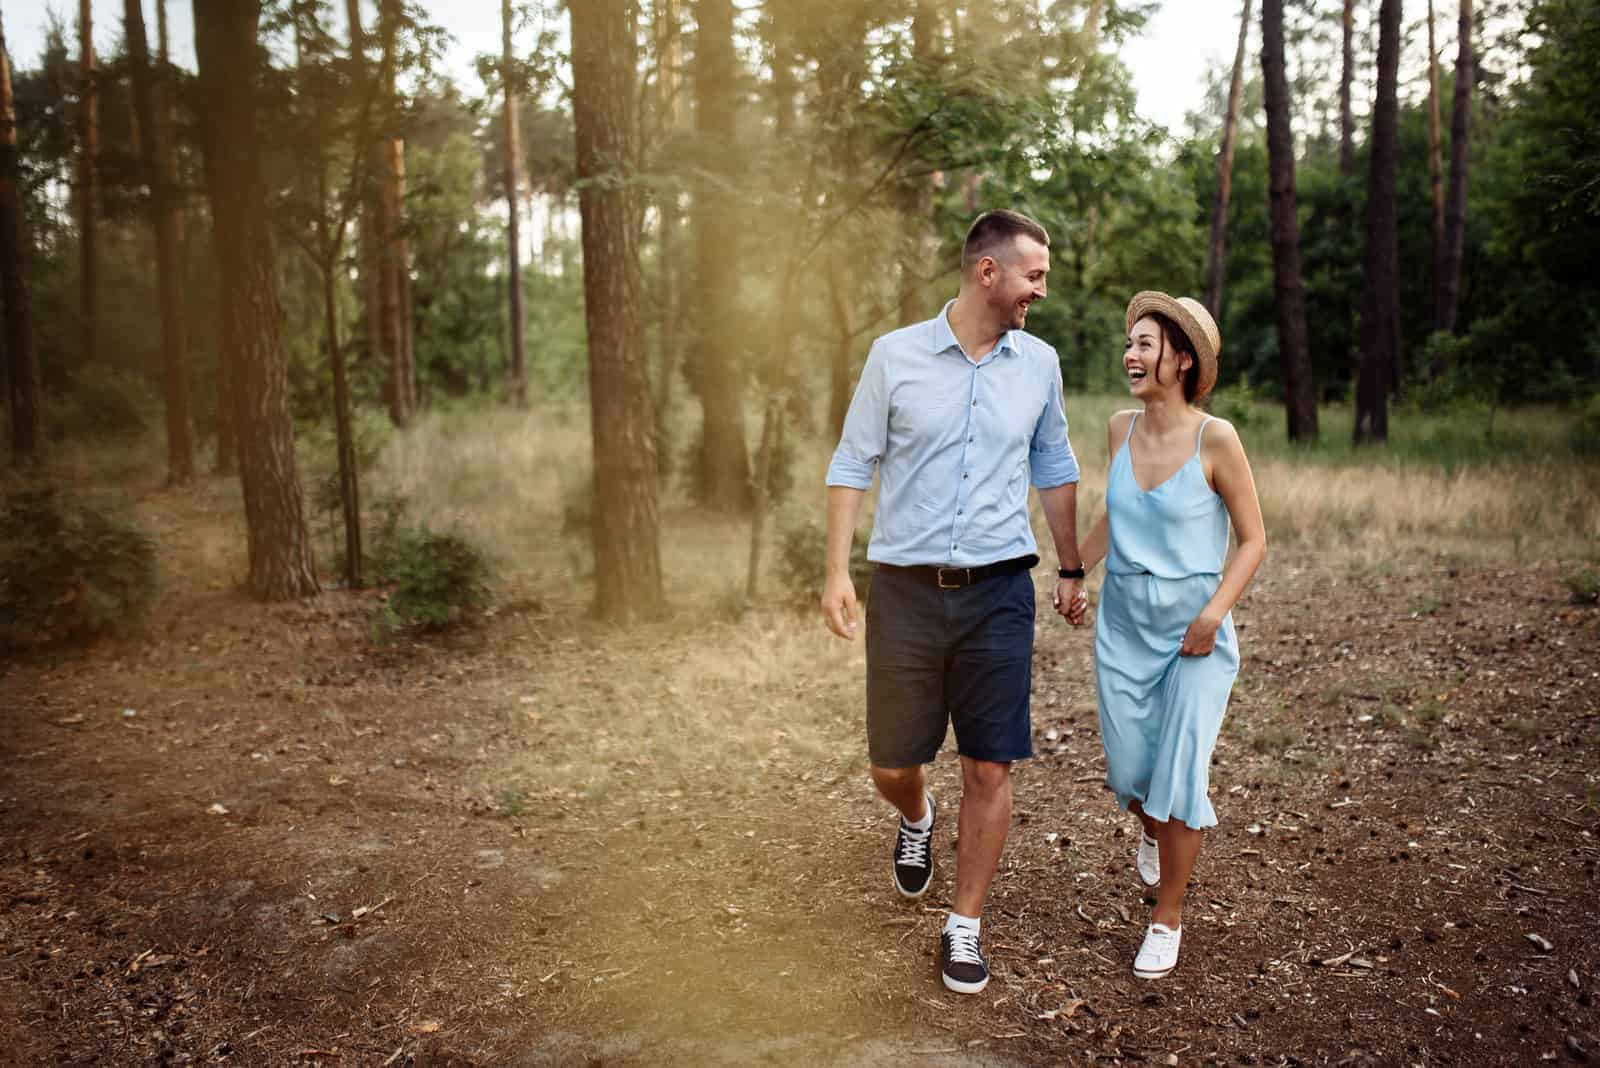 a smiling loving couple sets through the park